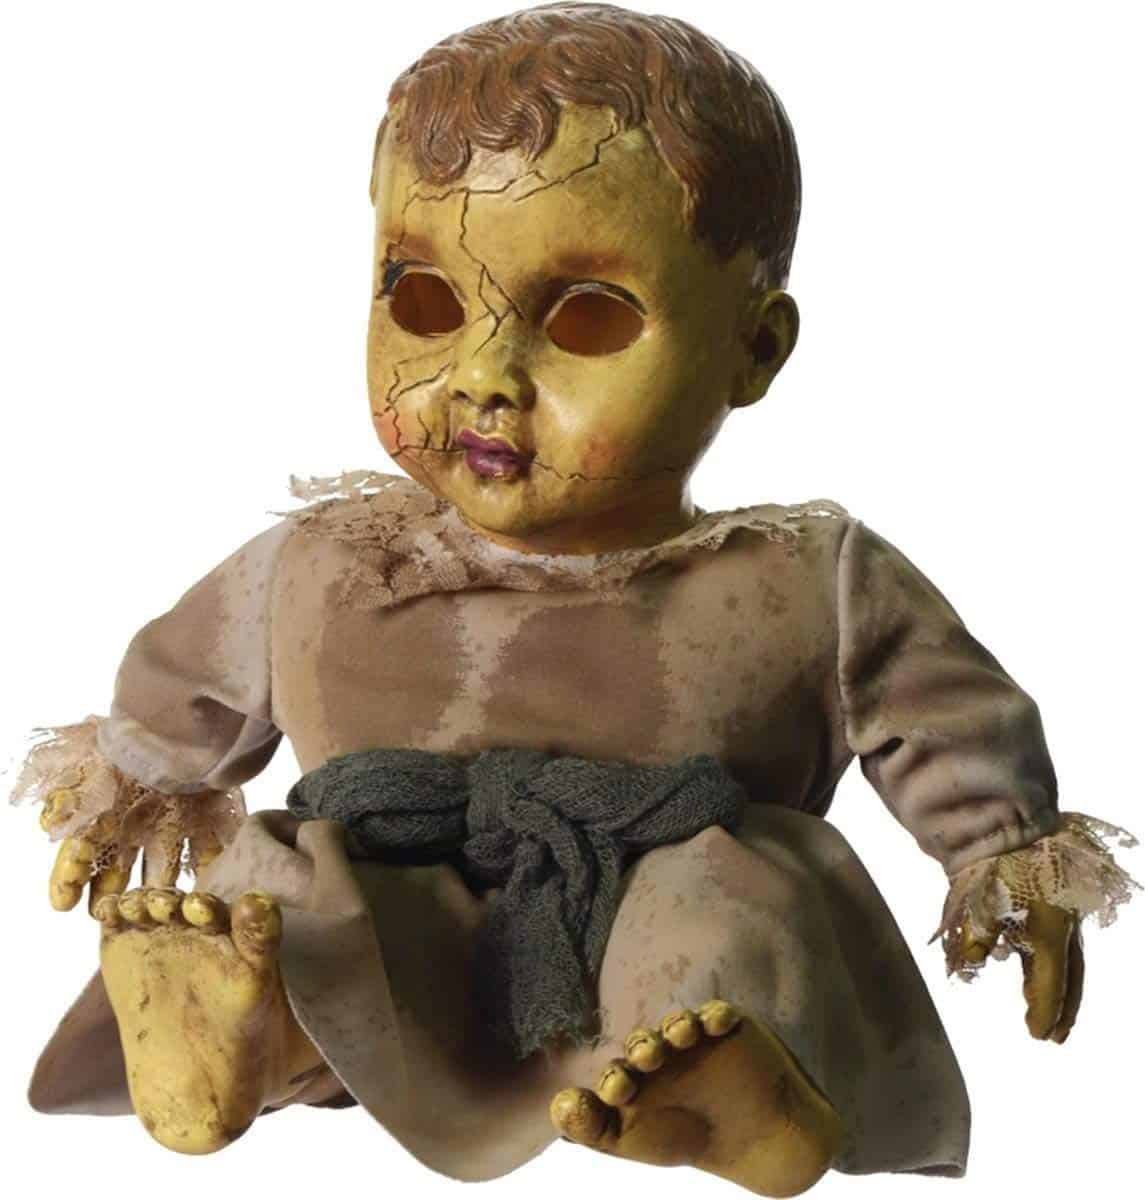 A Haunted Doll